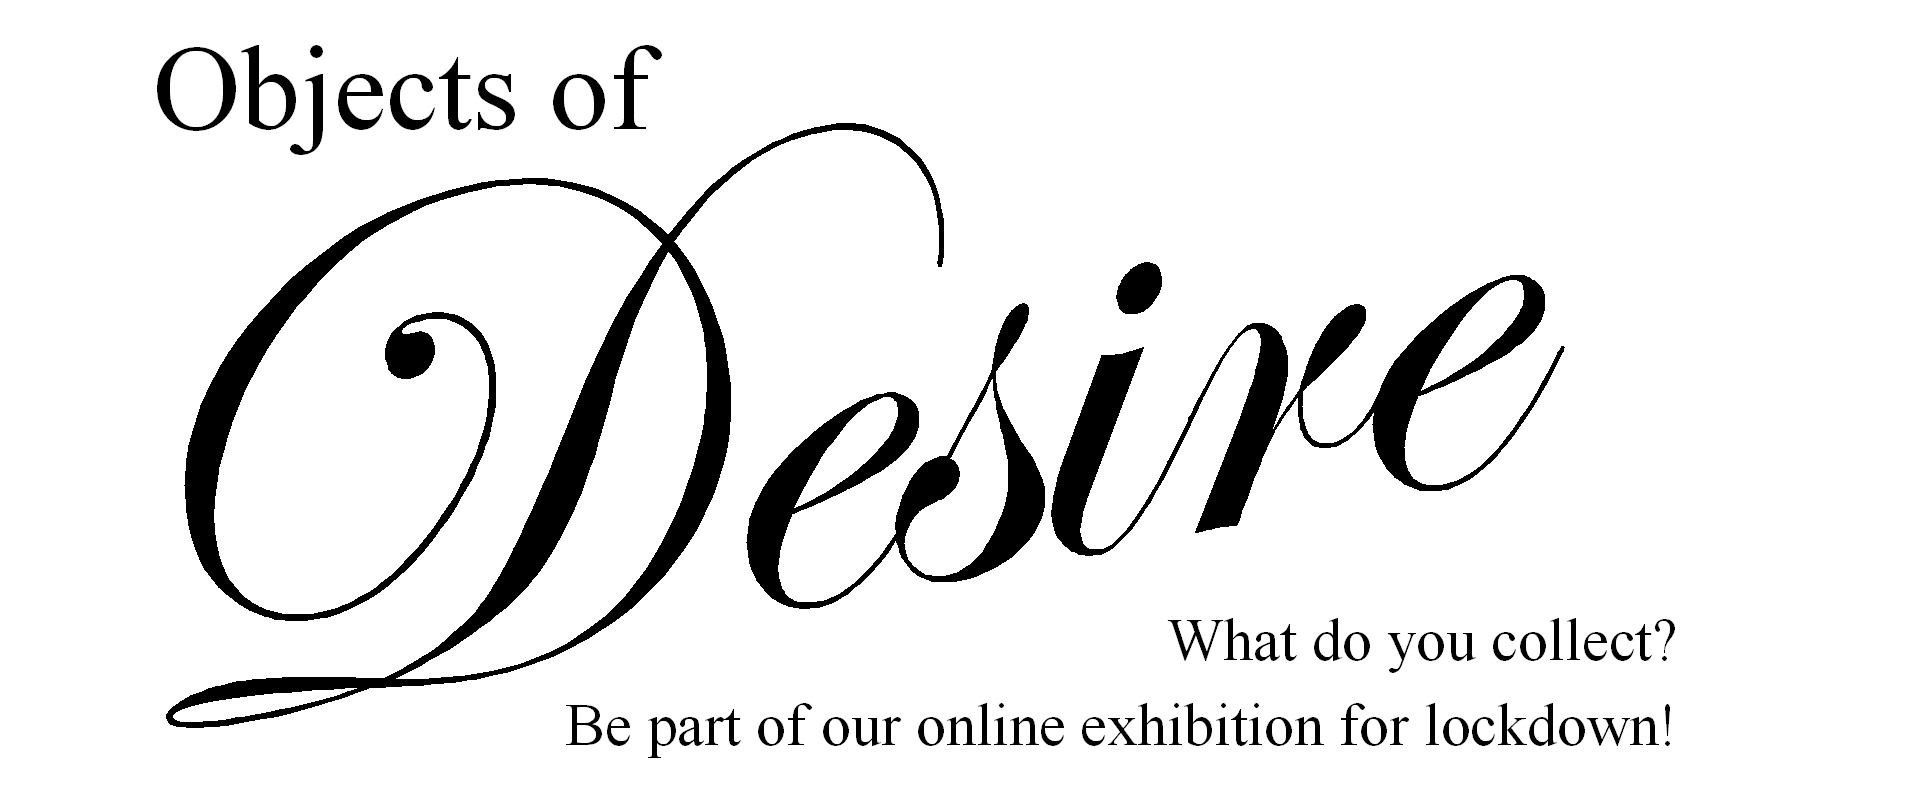 Objects of Desire - What do you collect? Be part of our online exhibition!